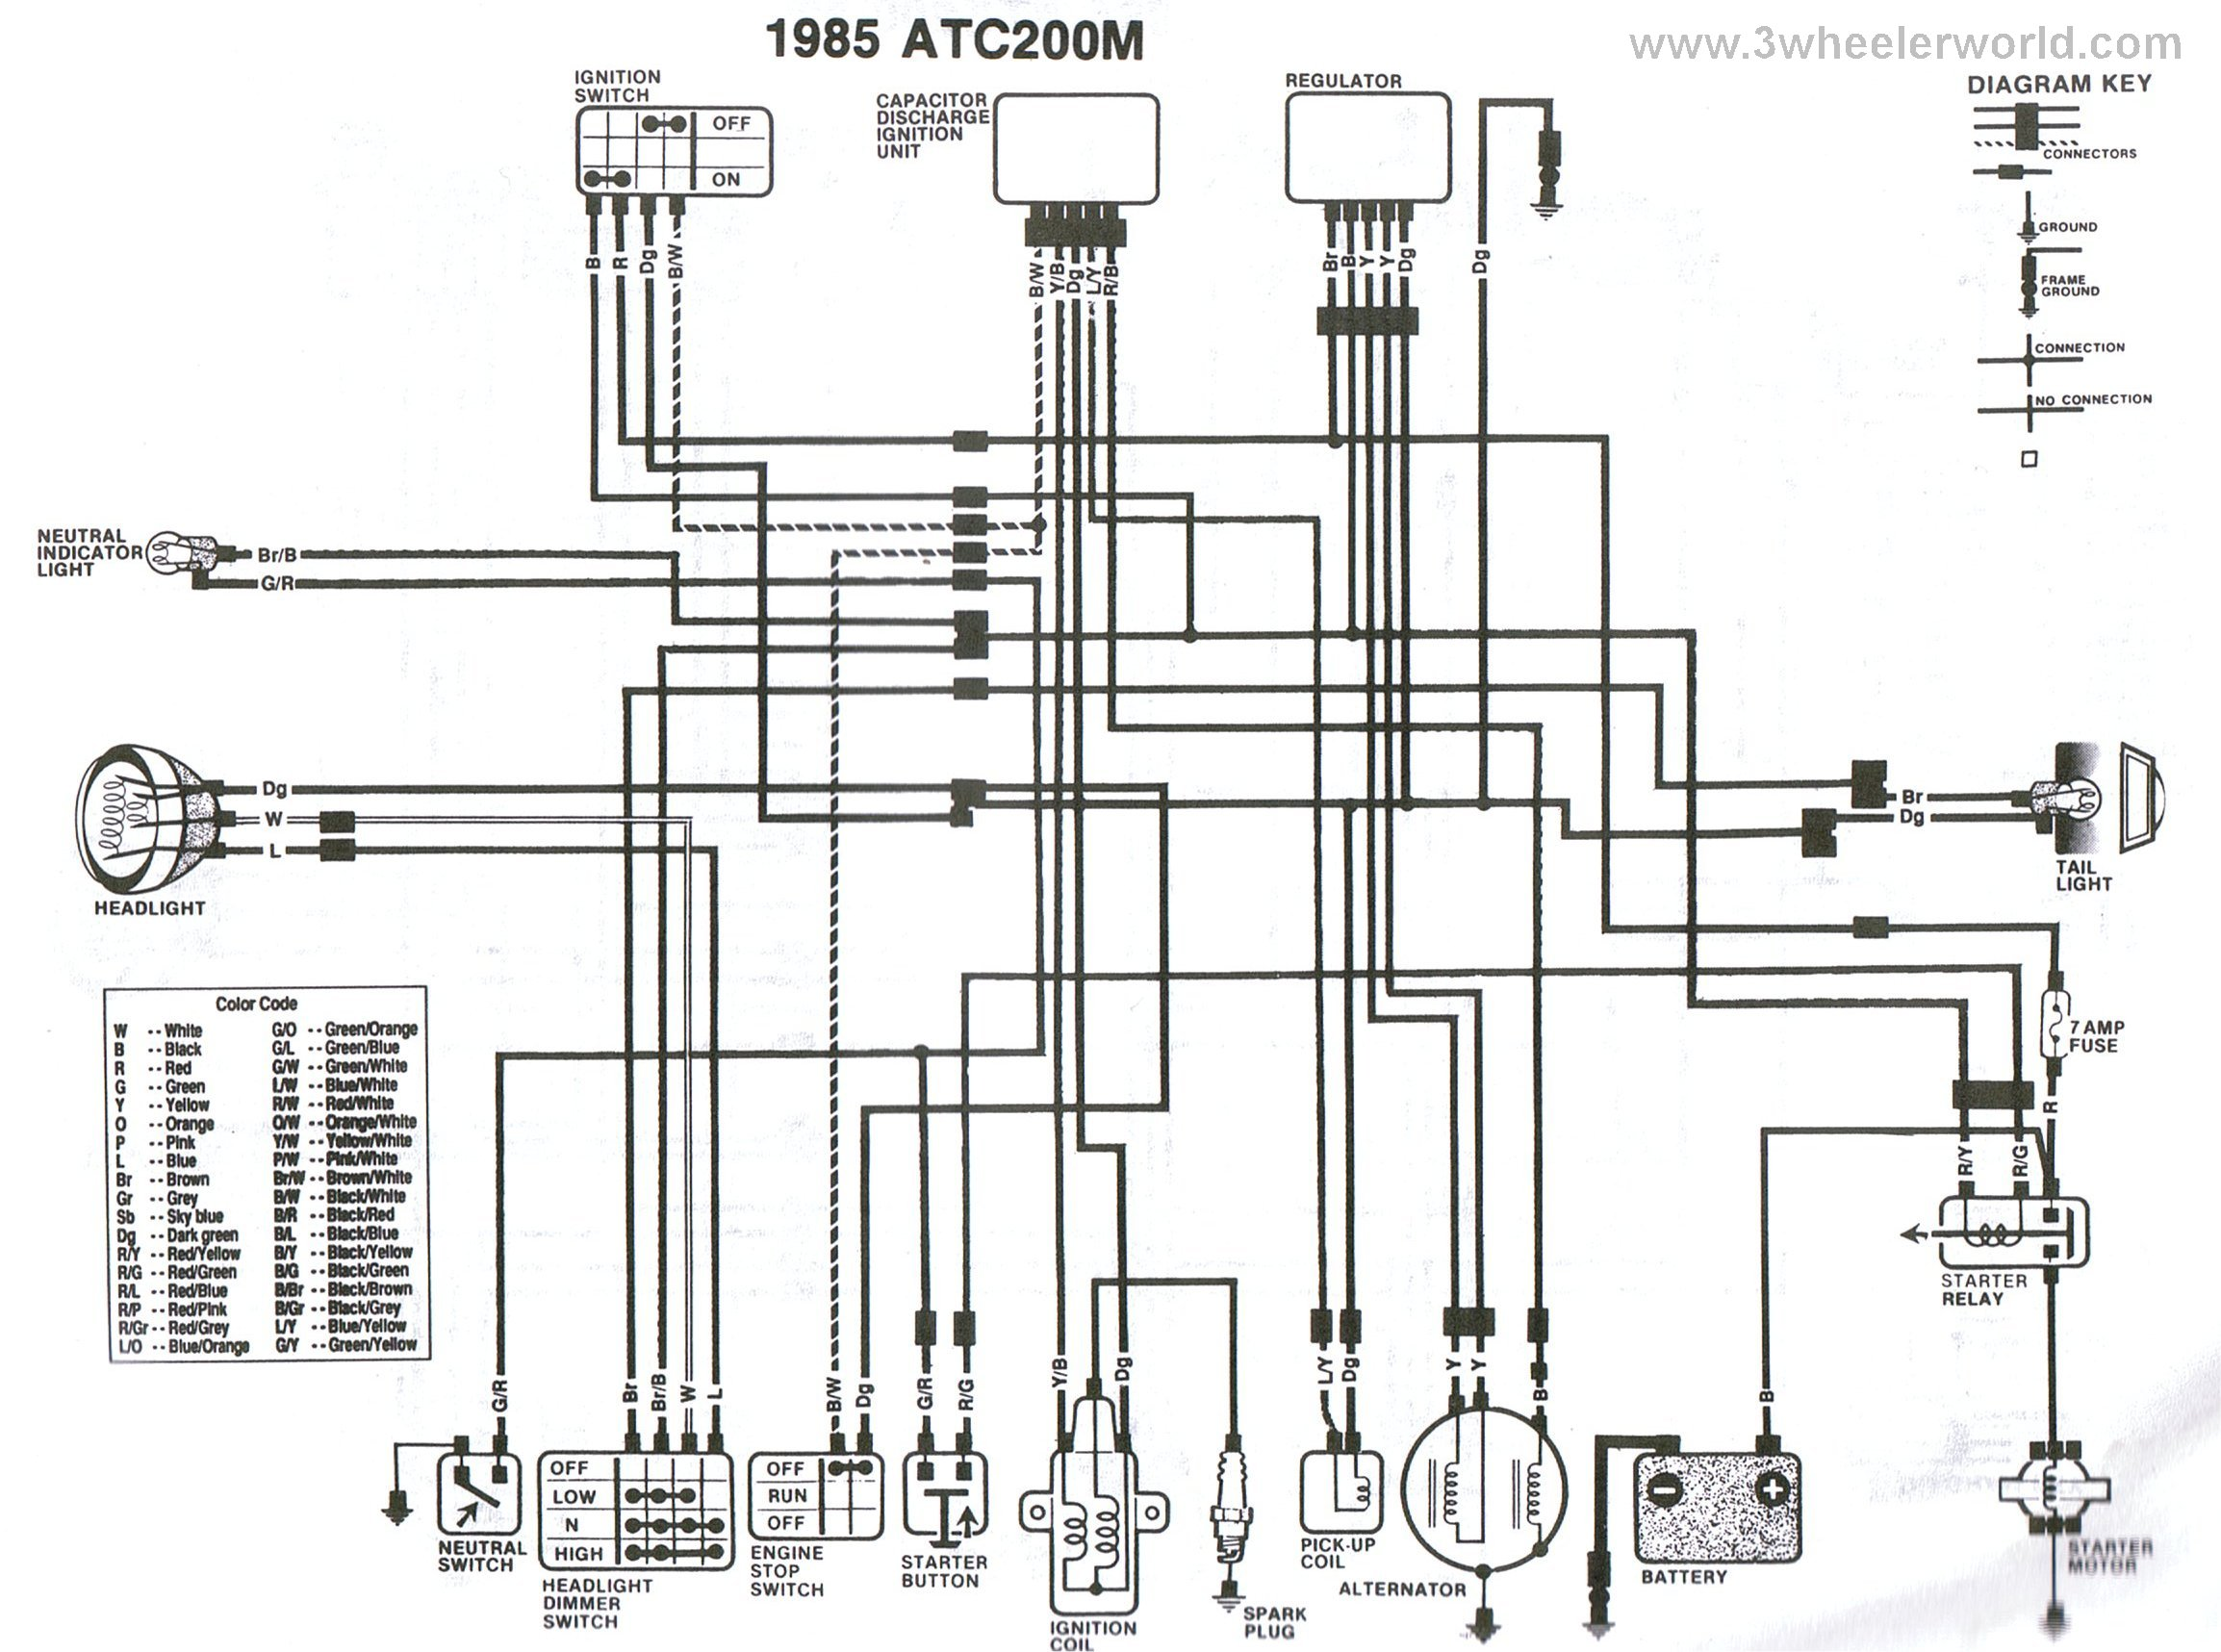 ATC200Mx85 honda big red wiring diagram wiring schematic for 1982 atc200e 1983 honda atc 200 wiring diagram at webbmarketing.co